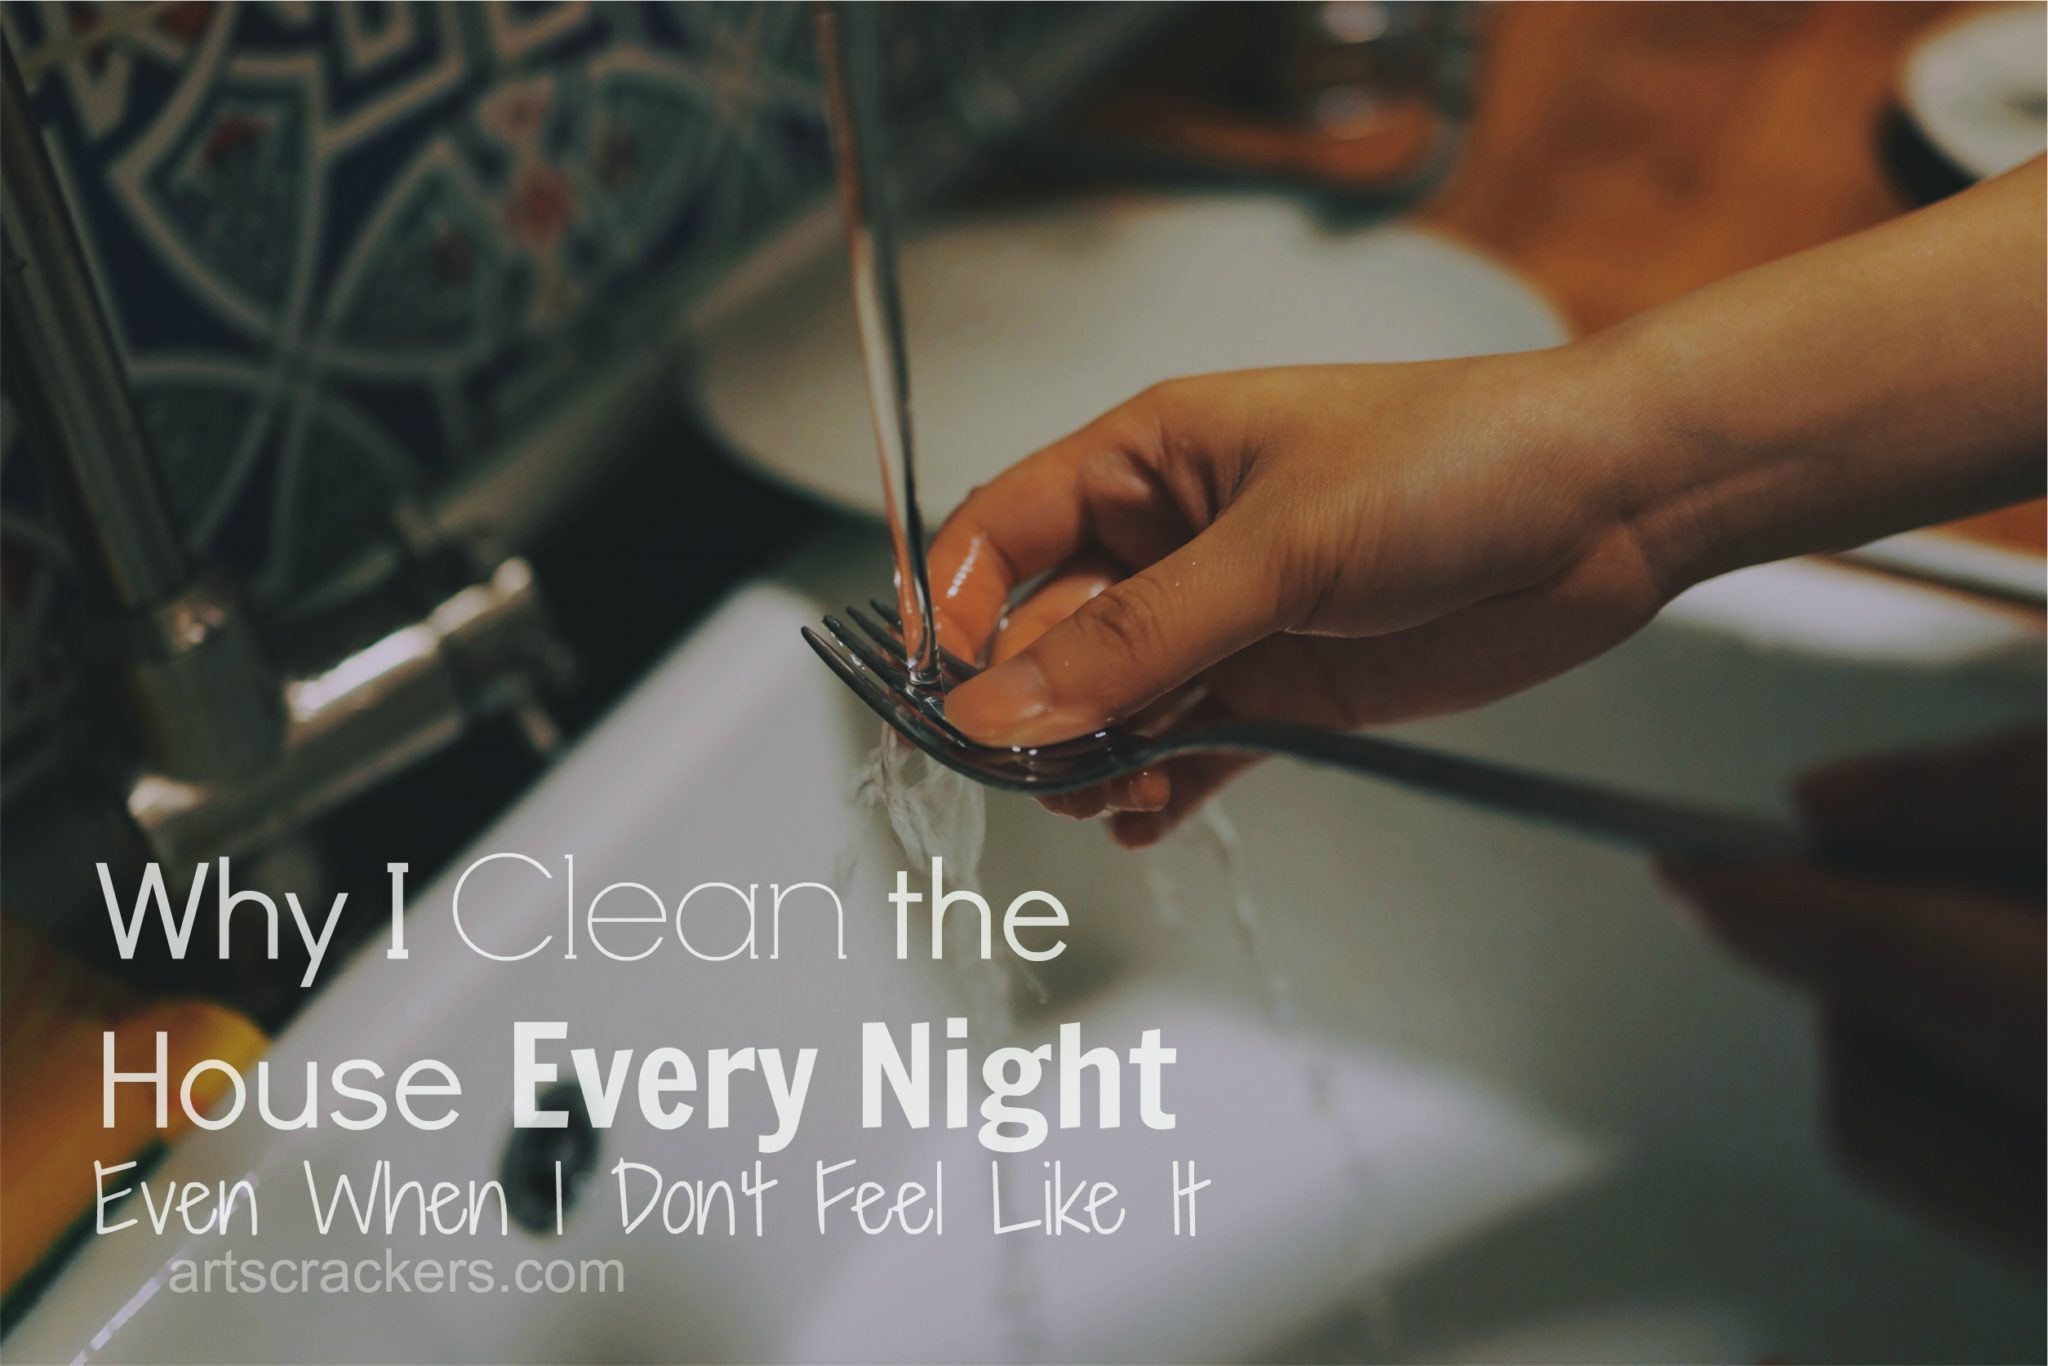 Why I Clean the House Every Night. Click the picture to read more.